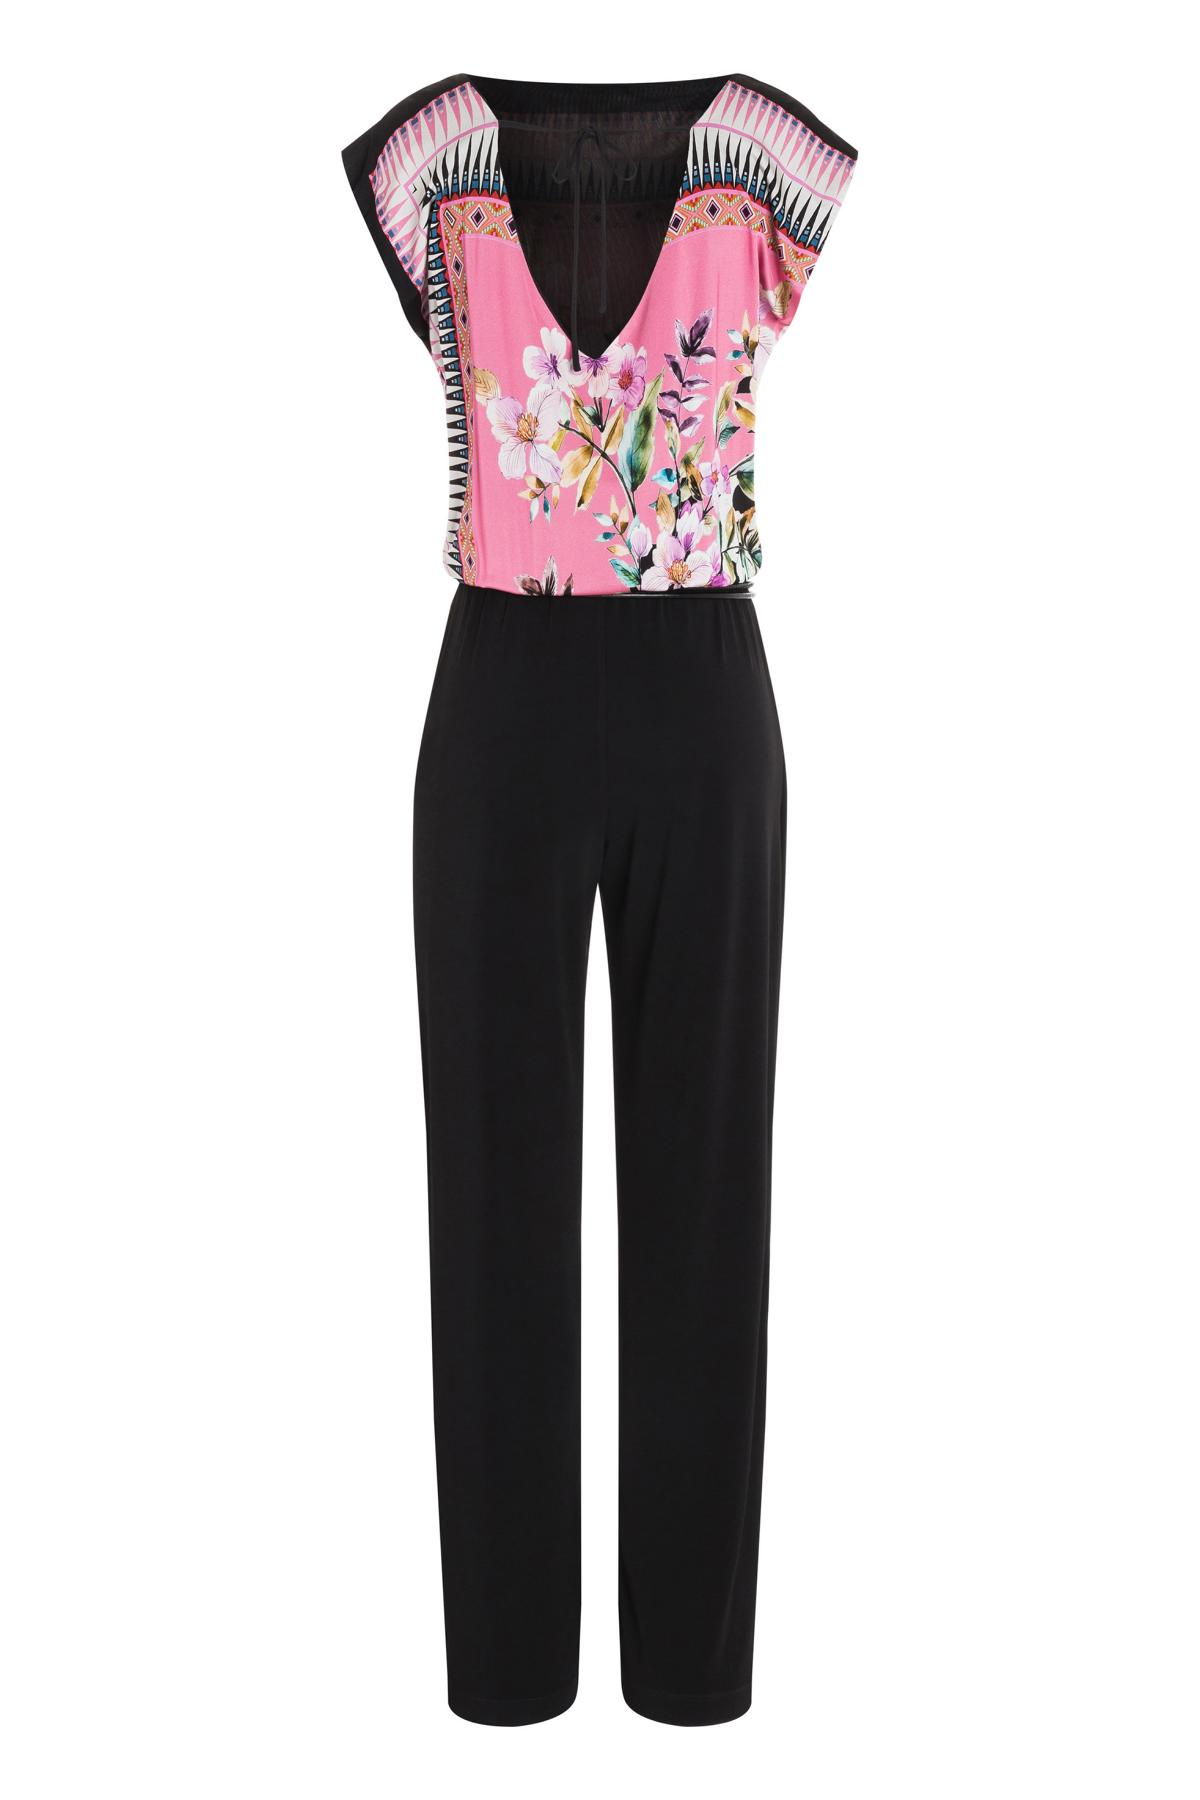 PRODUCT_PICTURE_PRE_7Ana Alcazar Jumpsuit Shempte PRODUCT_PICTURE_SUF_7